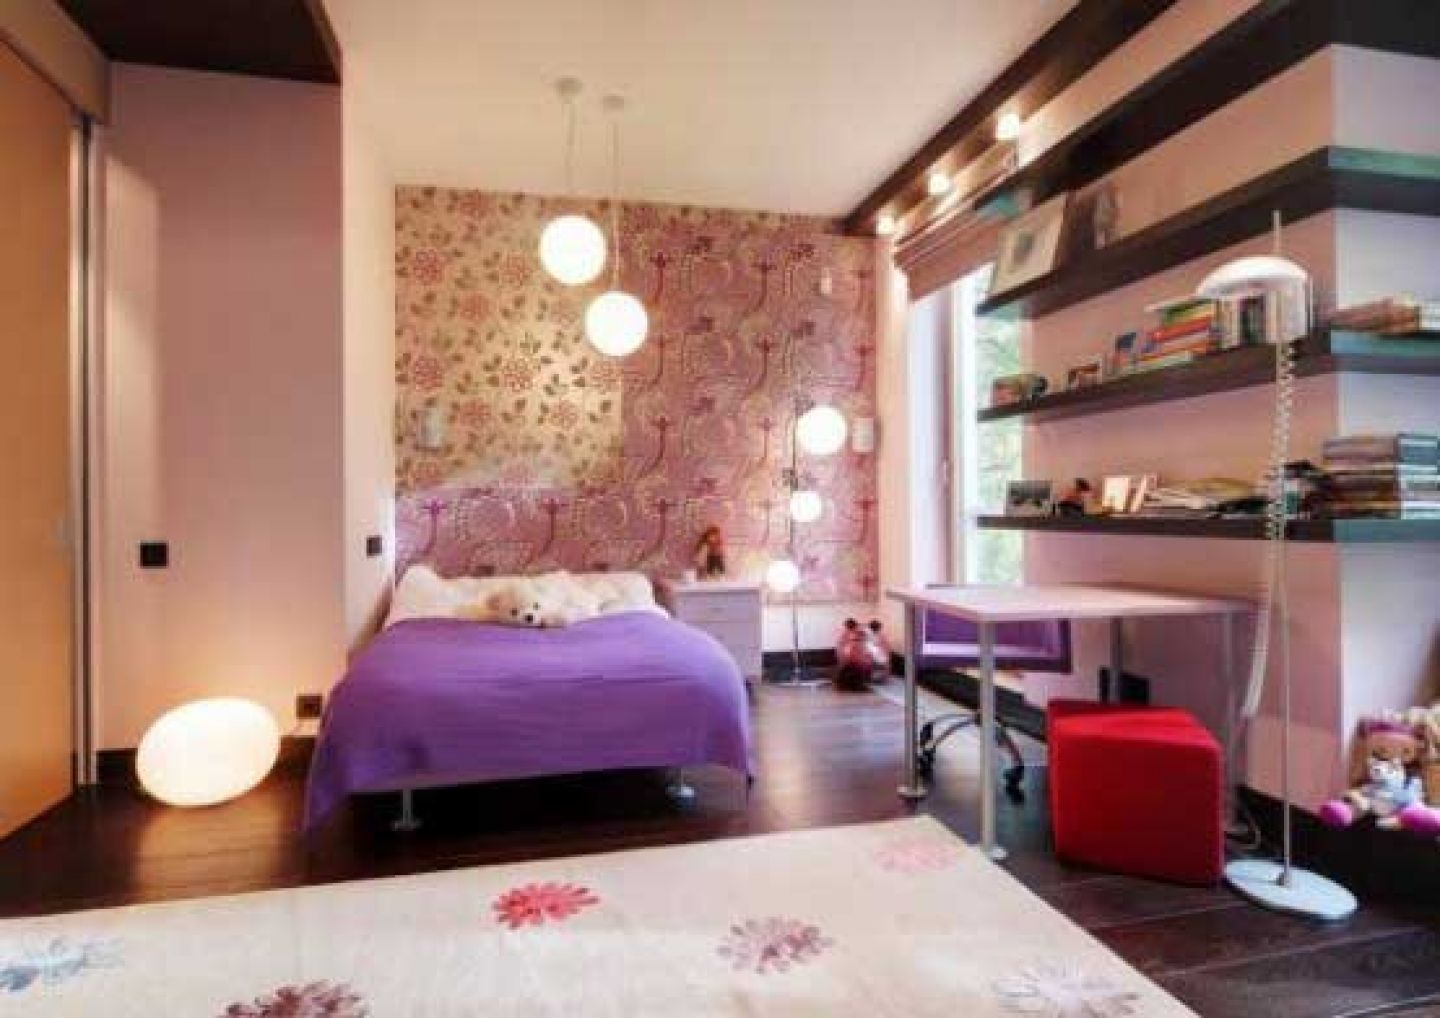 Excellent Images About Teenager Bedroom On Pinterest Teenage Room With.  Teen Bedroom Trendy Ideas About